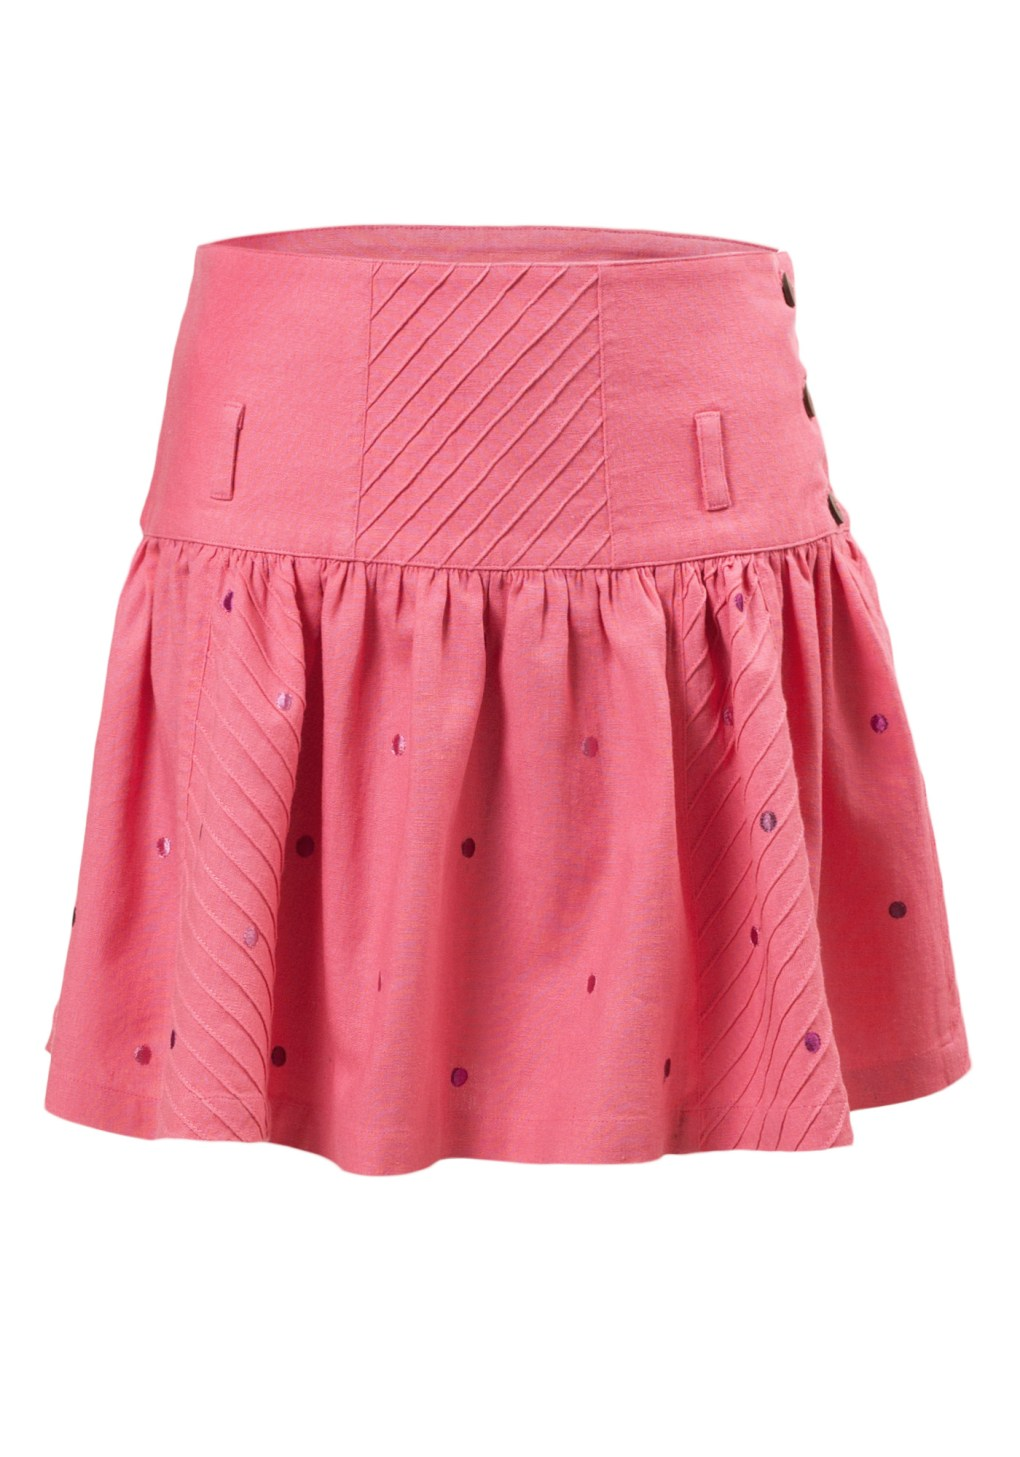 MINC Petite Embroidered Polka Dot Girls Skirt in Pink Linen